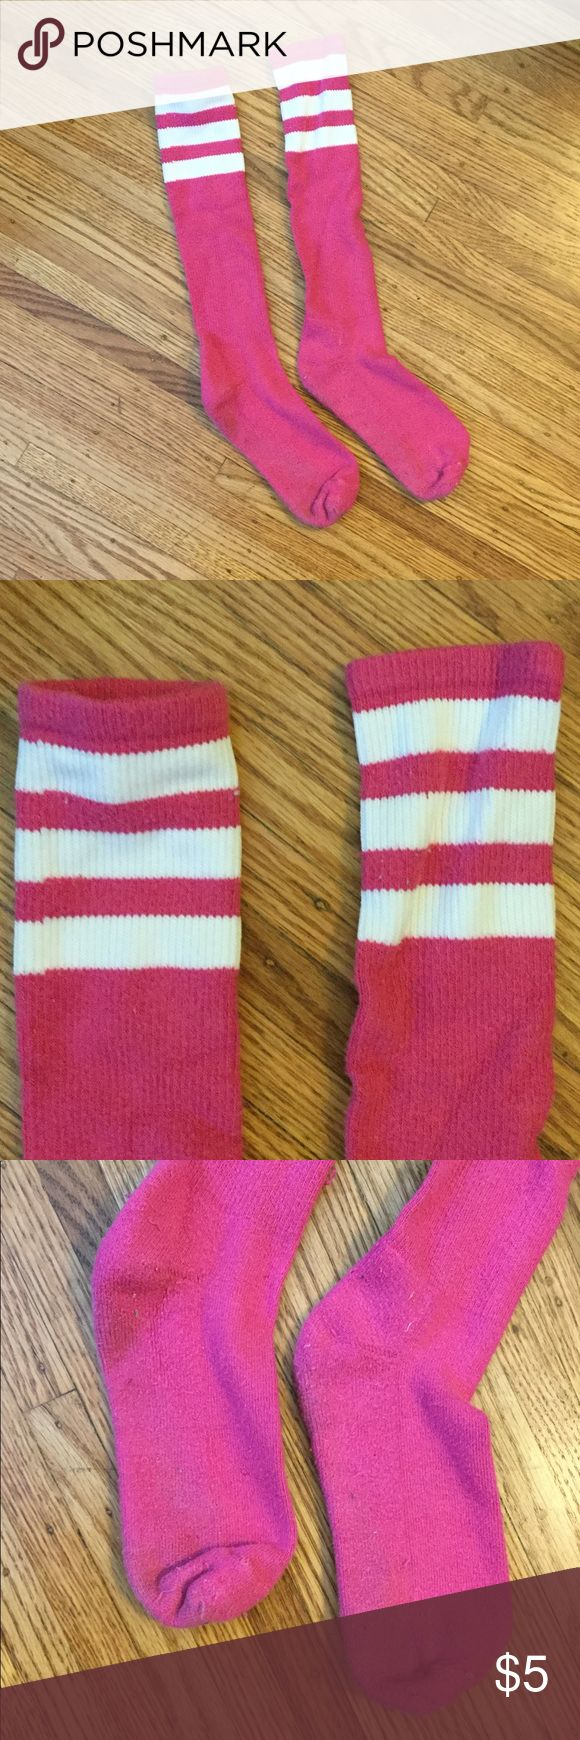 Pink knee high socks with white stripes Pink knee high socks with white stripes. Good quality, thicker cotton. EUC. Only wore a couple times. American Apparel Accessories Hosiery & Socks